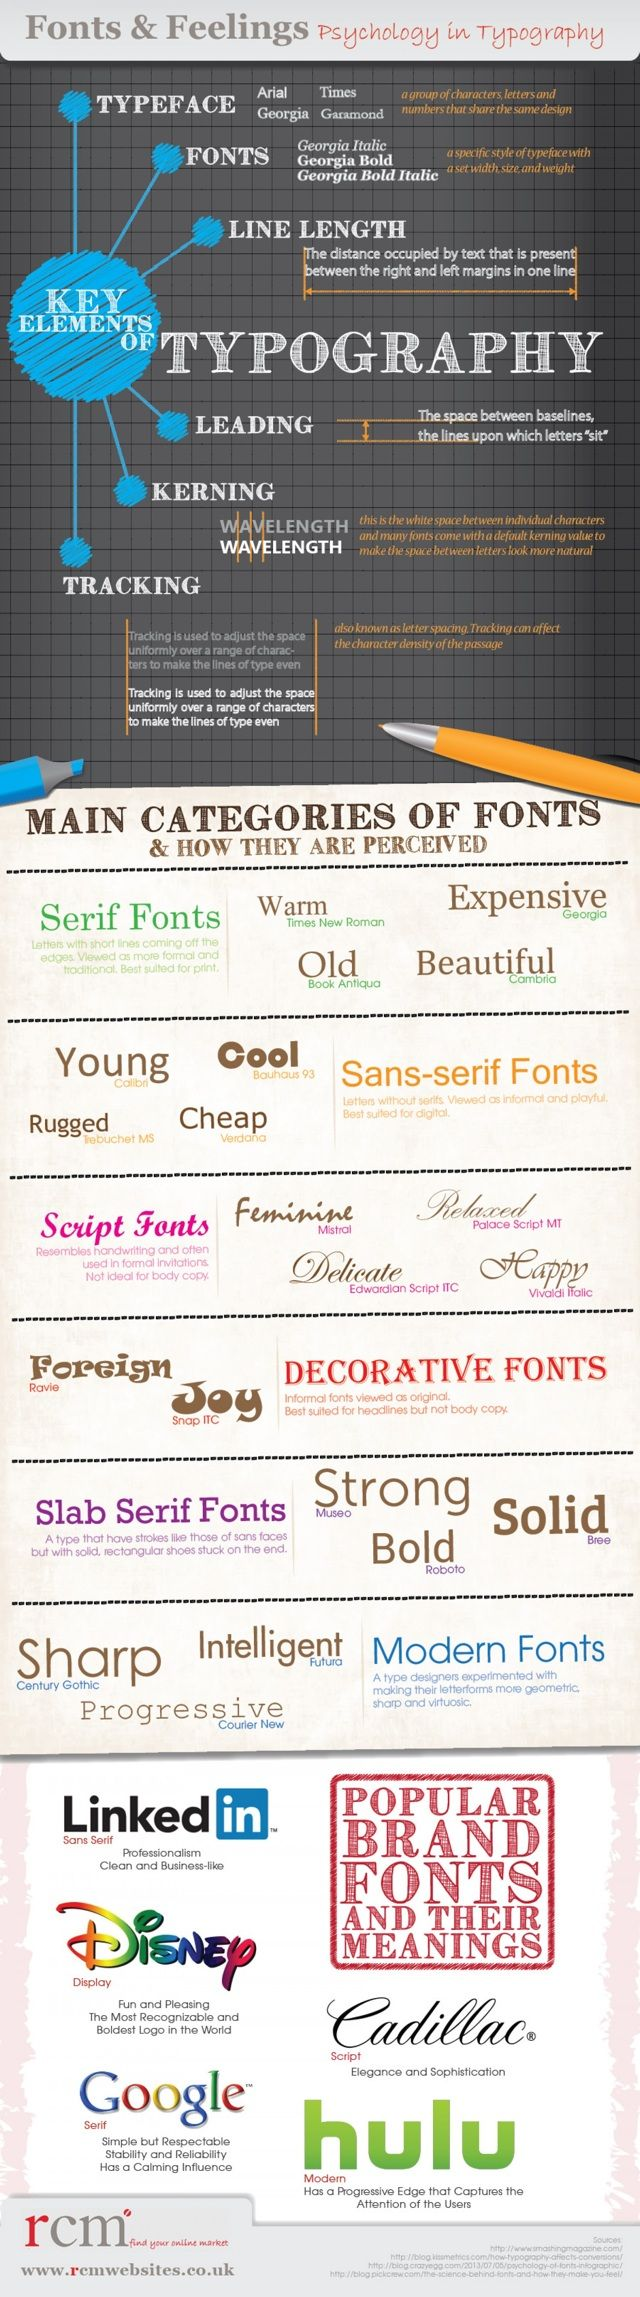 best infografic images on pinterest info graphics cool things